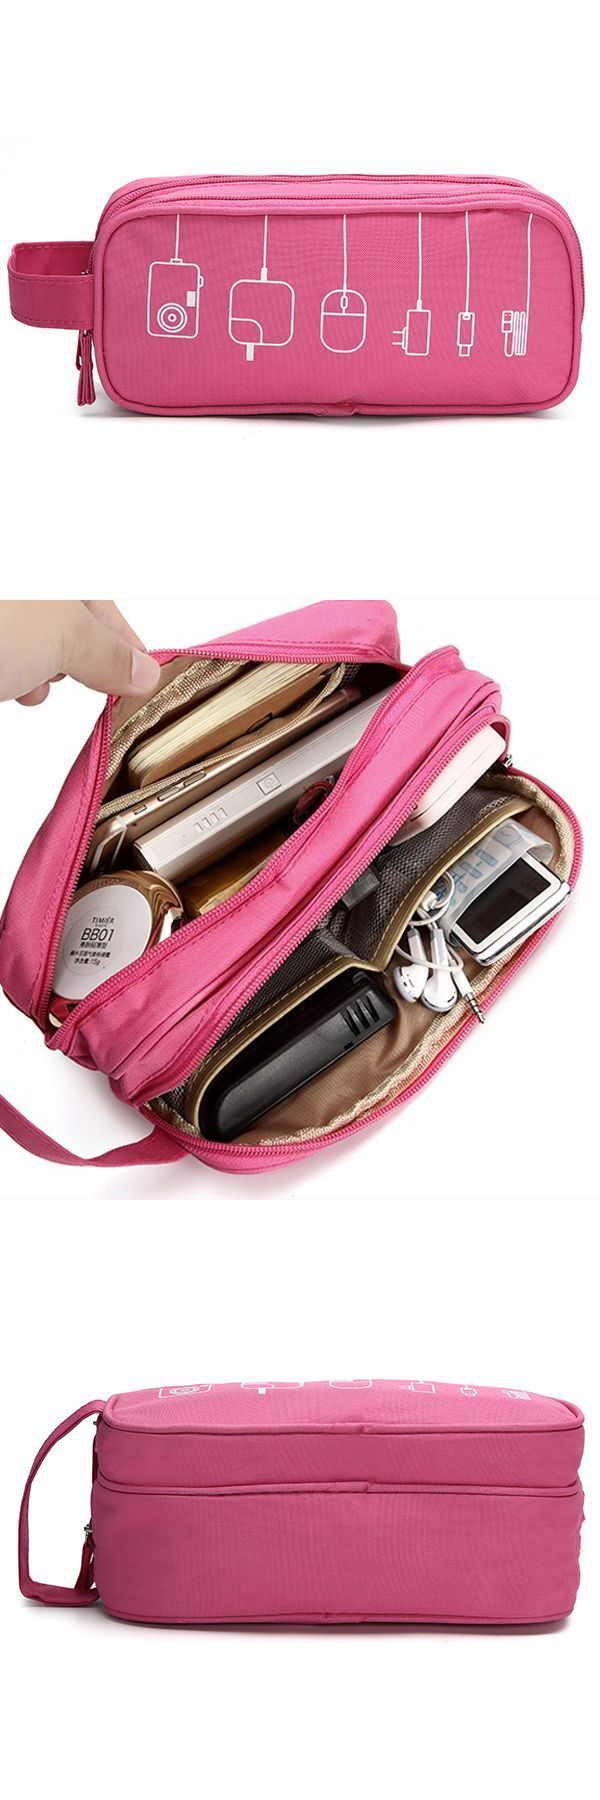 Women Graffiti Toiletry Bag Cosmetic Travel Must Have High End Digital Usb Cable Storage